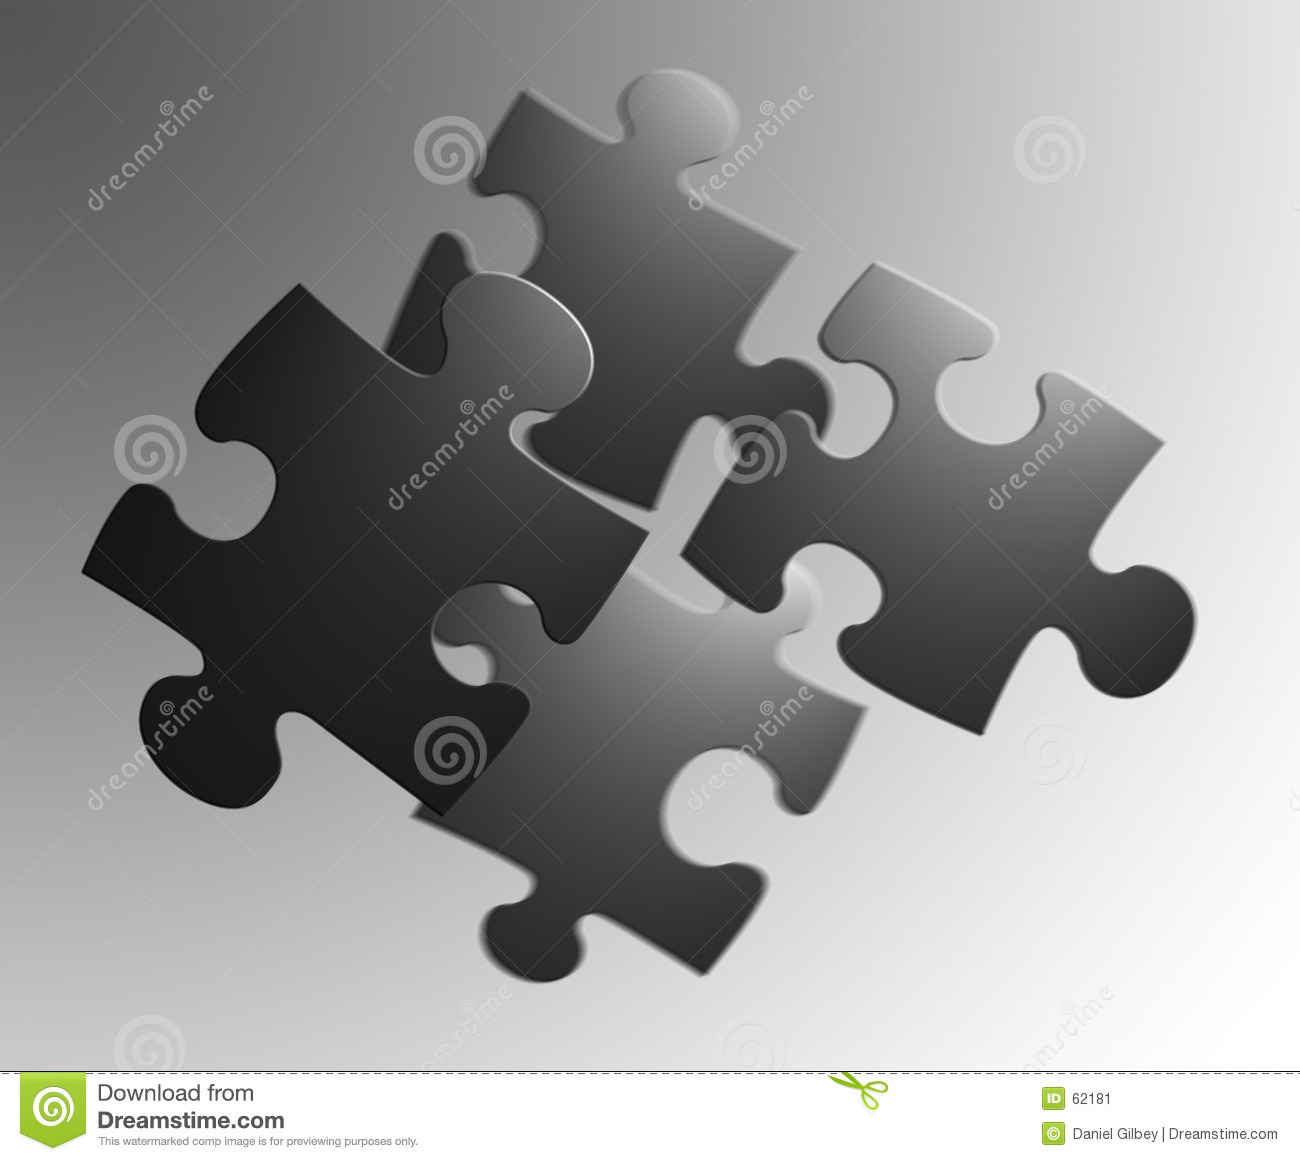 4 pieces of a jigsaw